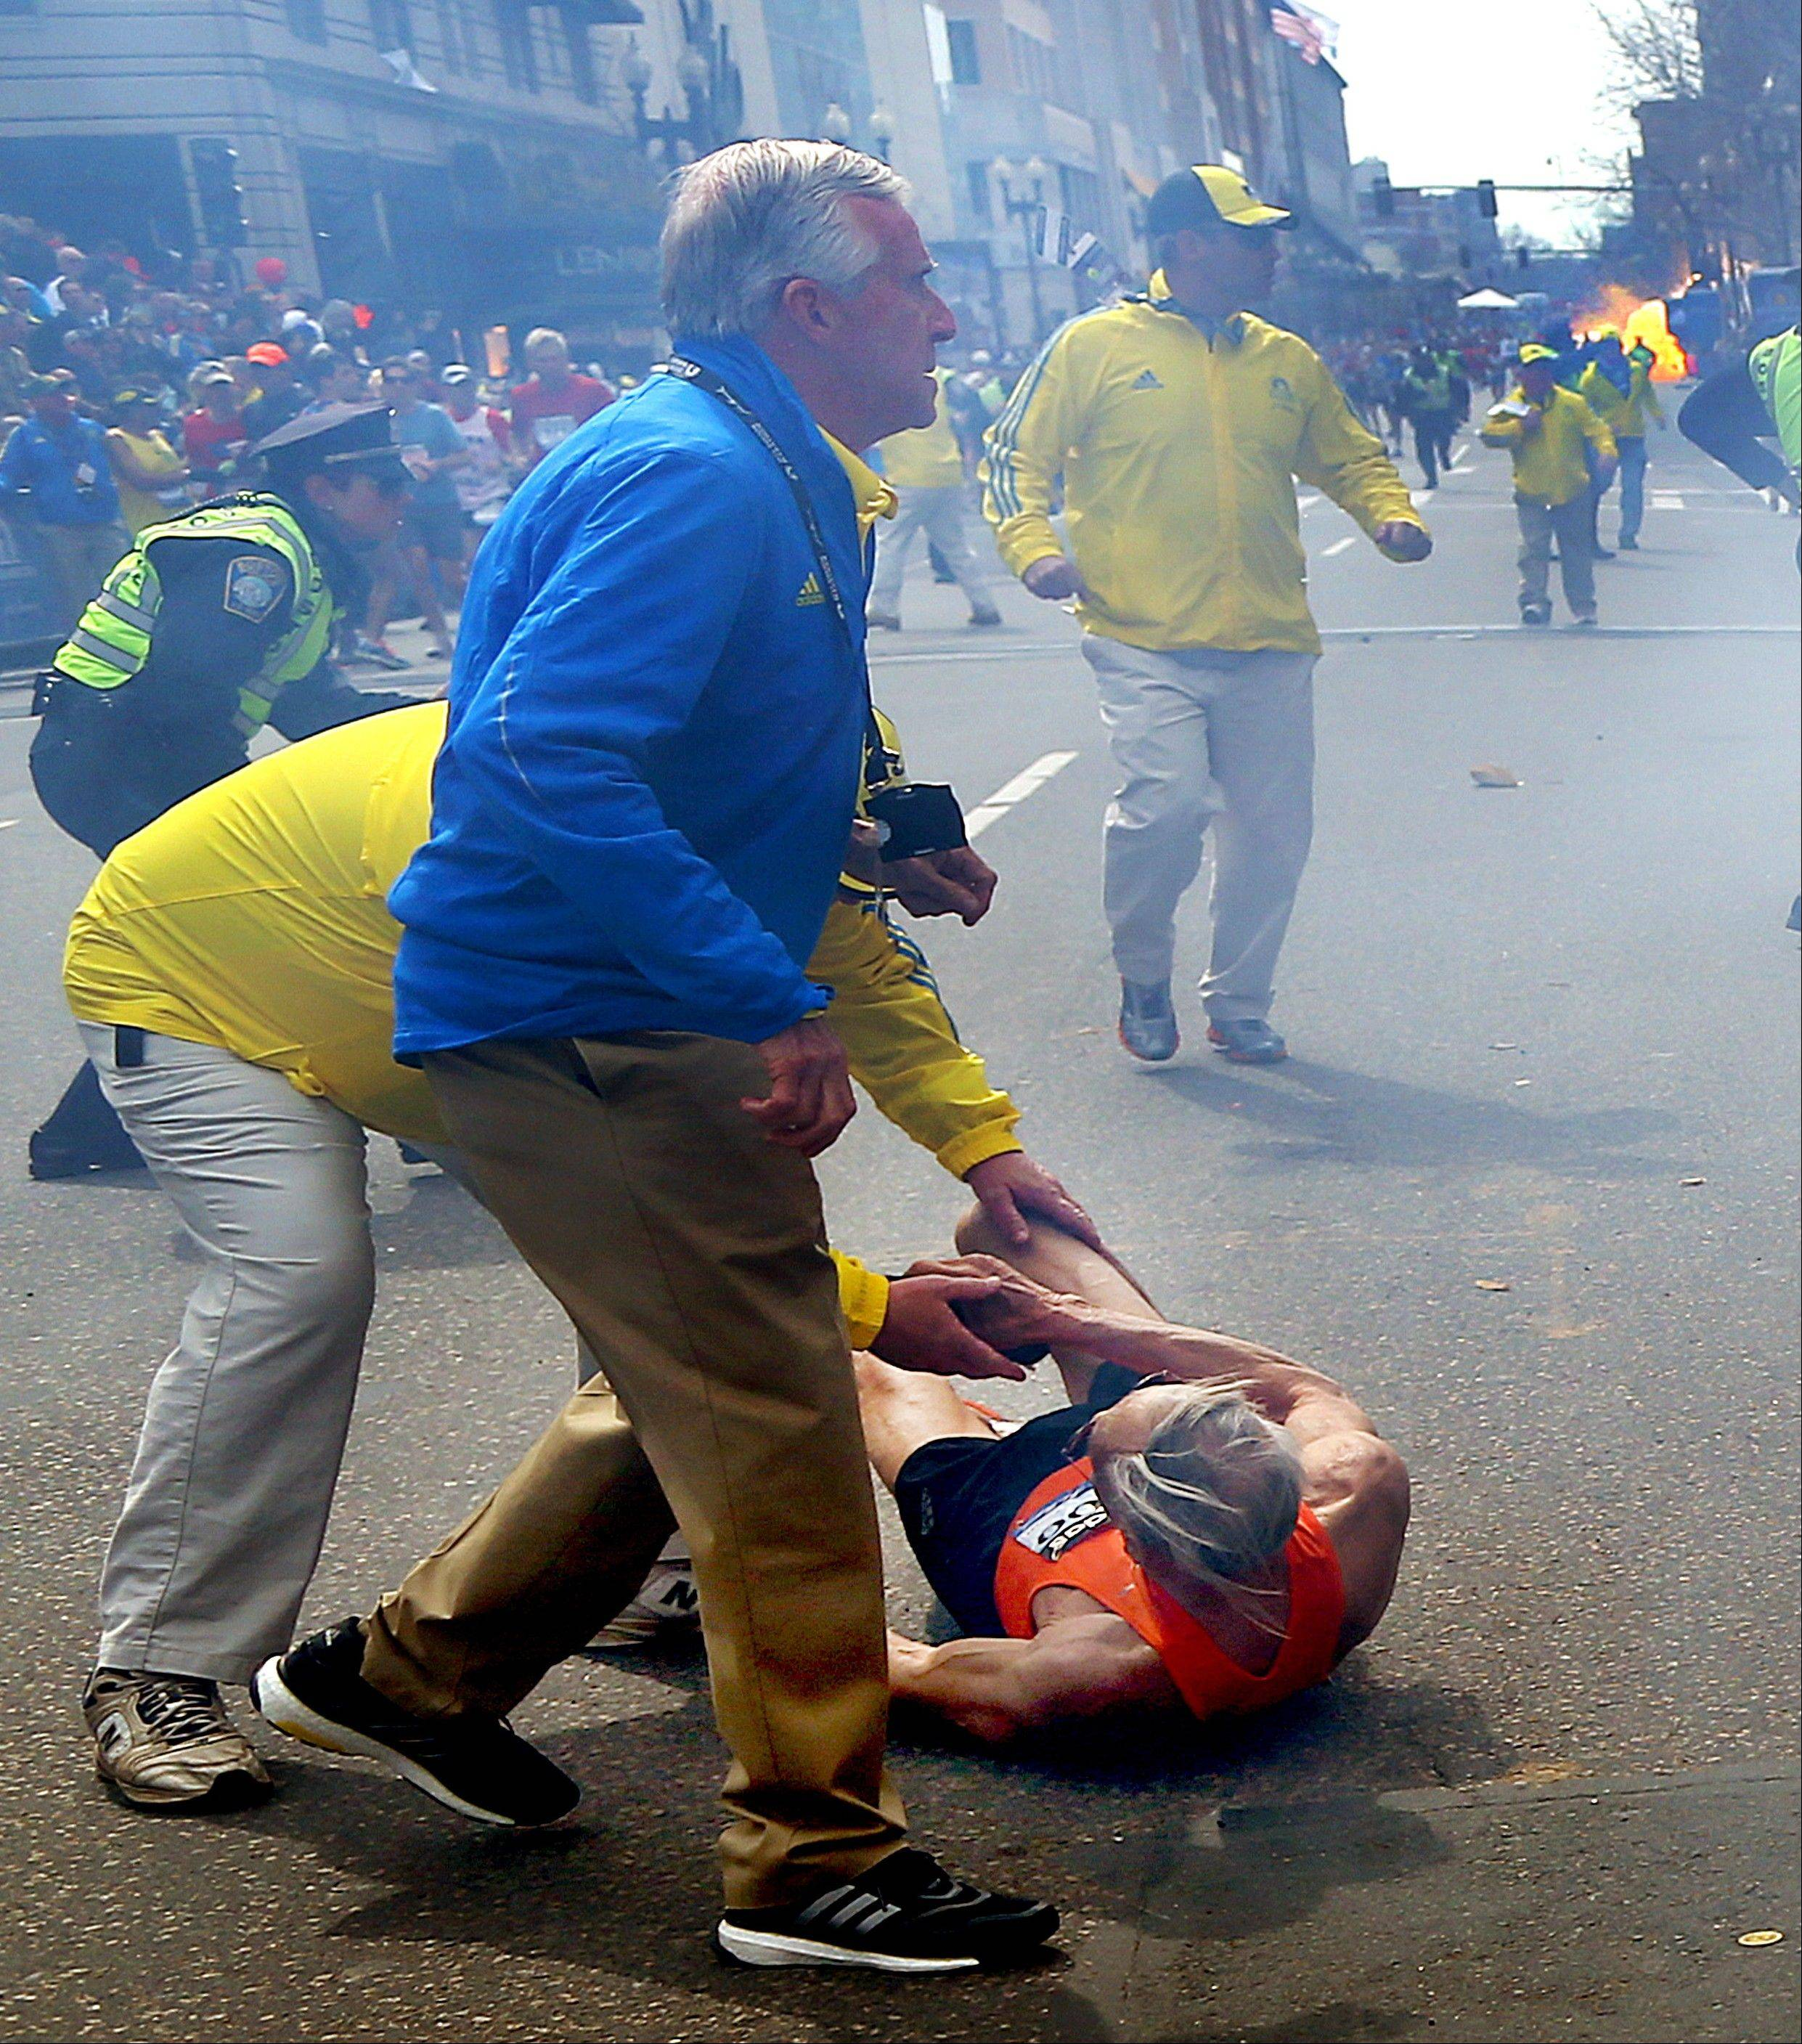 People react to a second explosion at the 2013 Boston Marathon in Boston, Monday, April 15, 2013. Two explosions shattered the euphoria of the Boston Marathon finish line on Monday, sending authorities out on the course to carry off the injured while the stragglers were rerouted away from the smoking site of the blasts.